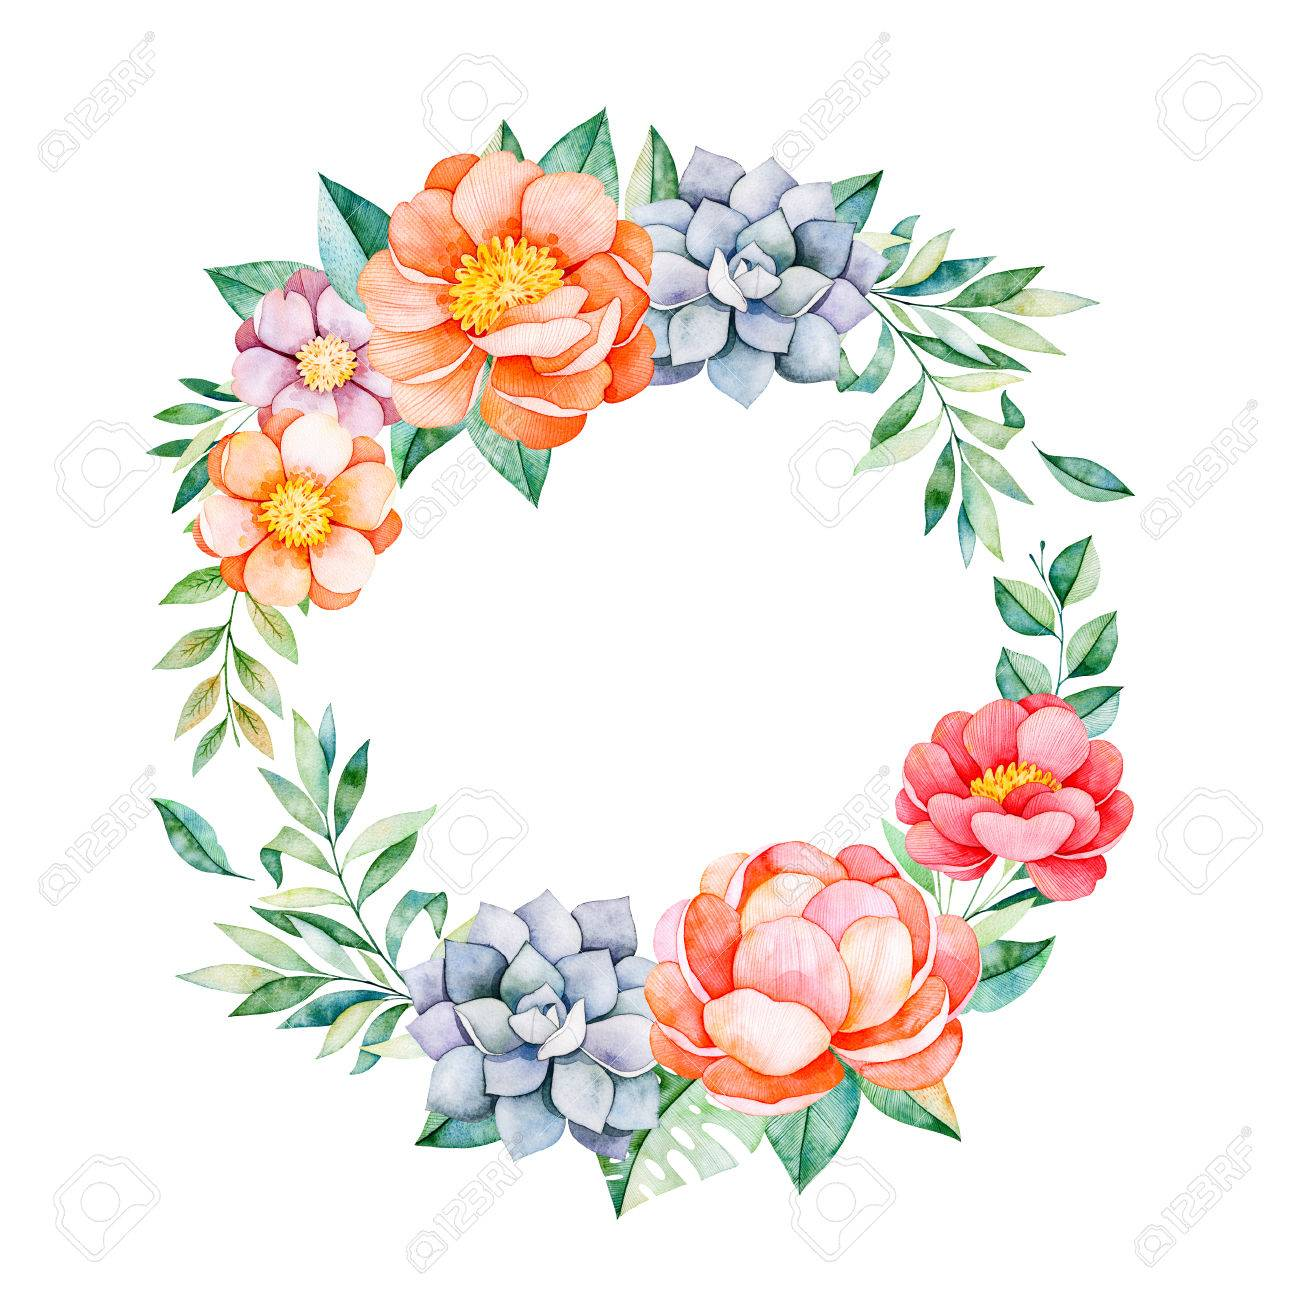 Lovely Floral Pastel Wreath With Peony Flowers Leaves Branches